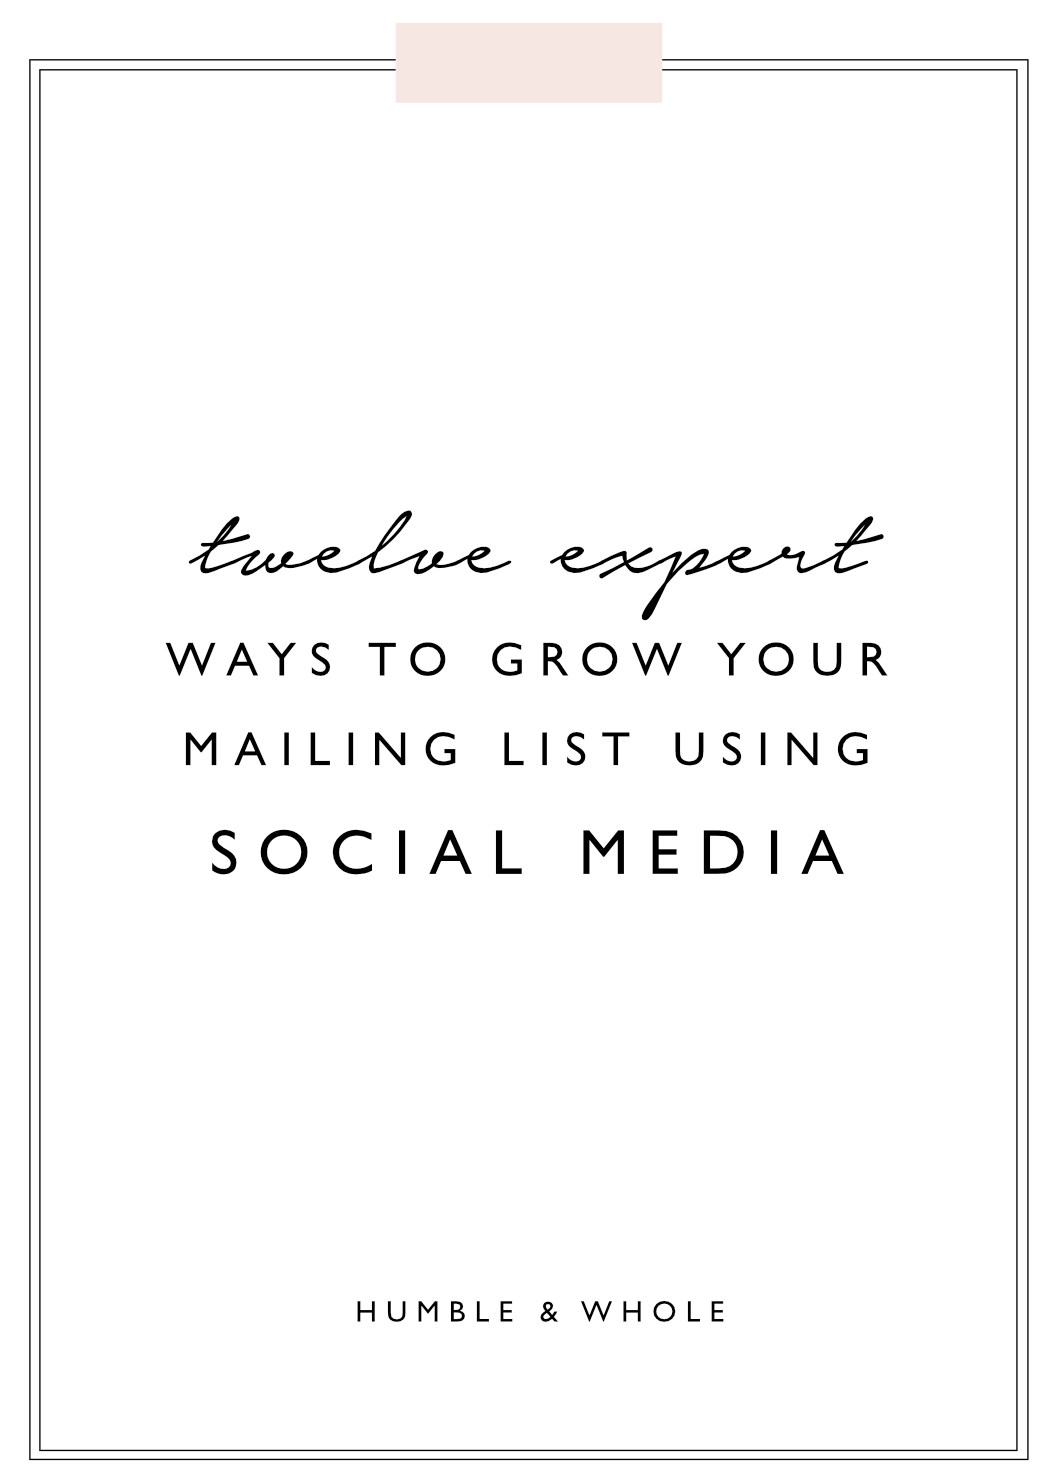 Your mailing list is one of the most important components of your business, and it is critical not to rely on a huge social media following for the sustainability of your business.  Check out these twelve tips and learn how to convert your social media followers into mailing list subscribers!